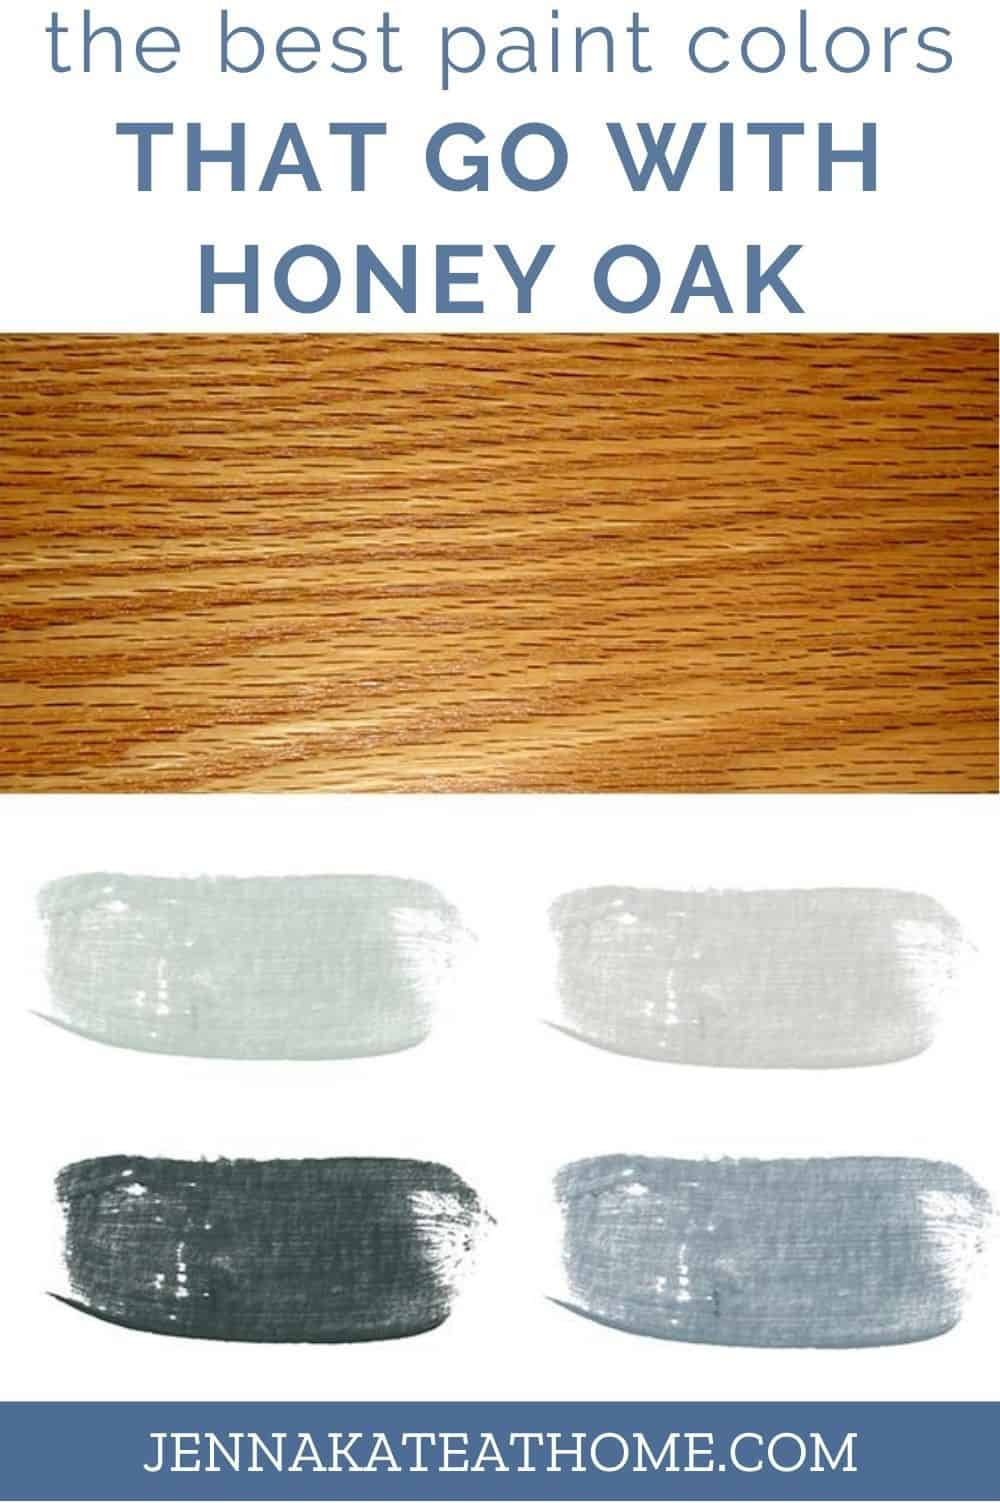 paint colors that go with honey oak